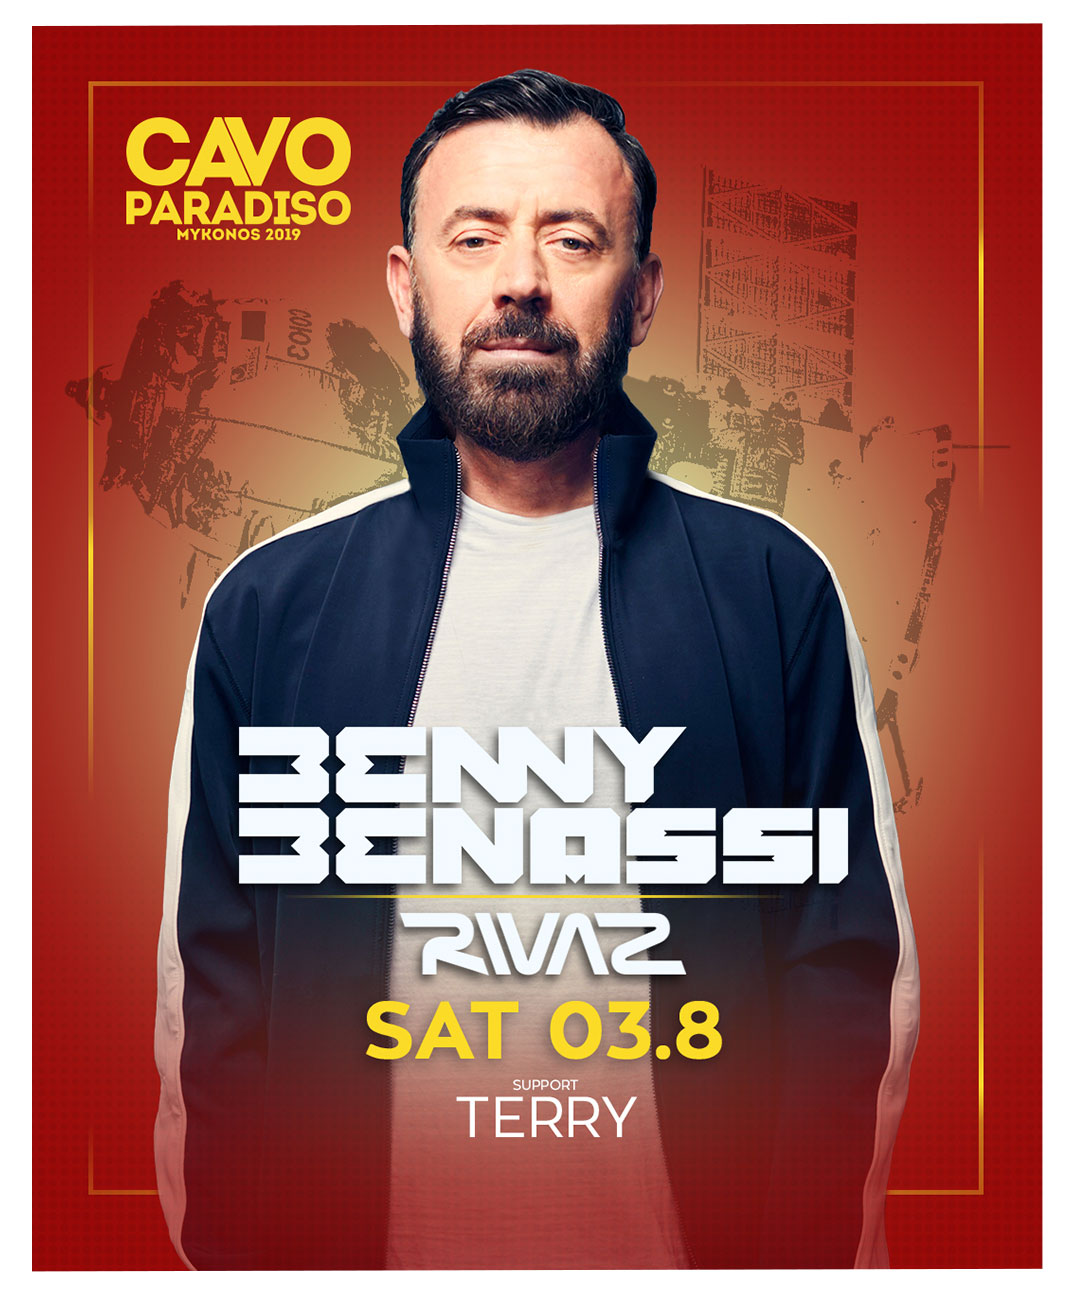 Benny Benassi along w/ Rivaz & support by Terry